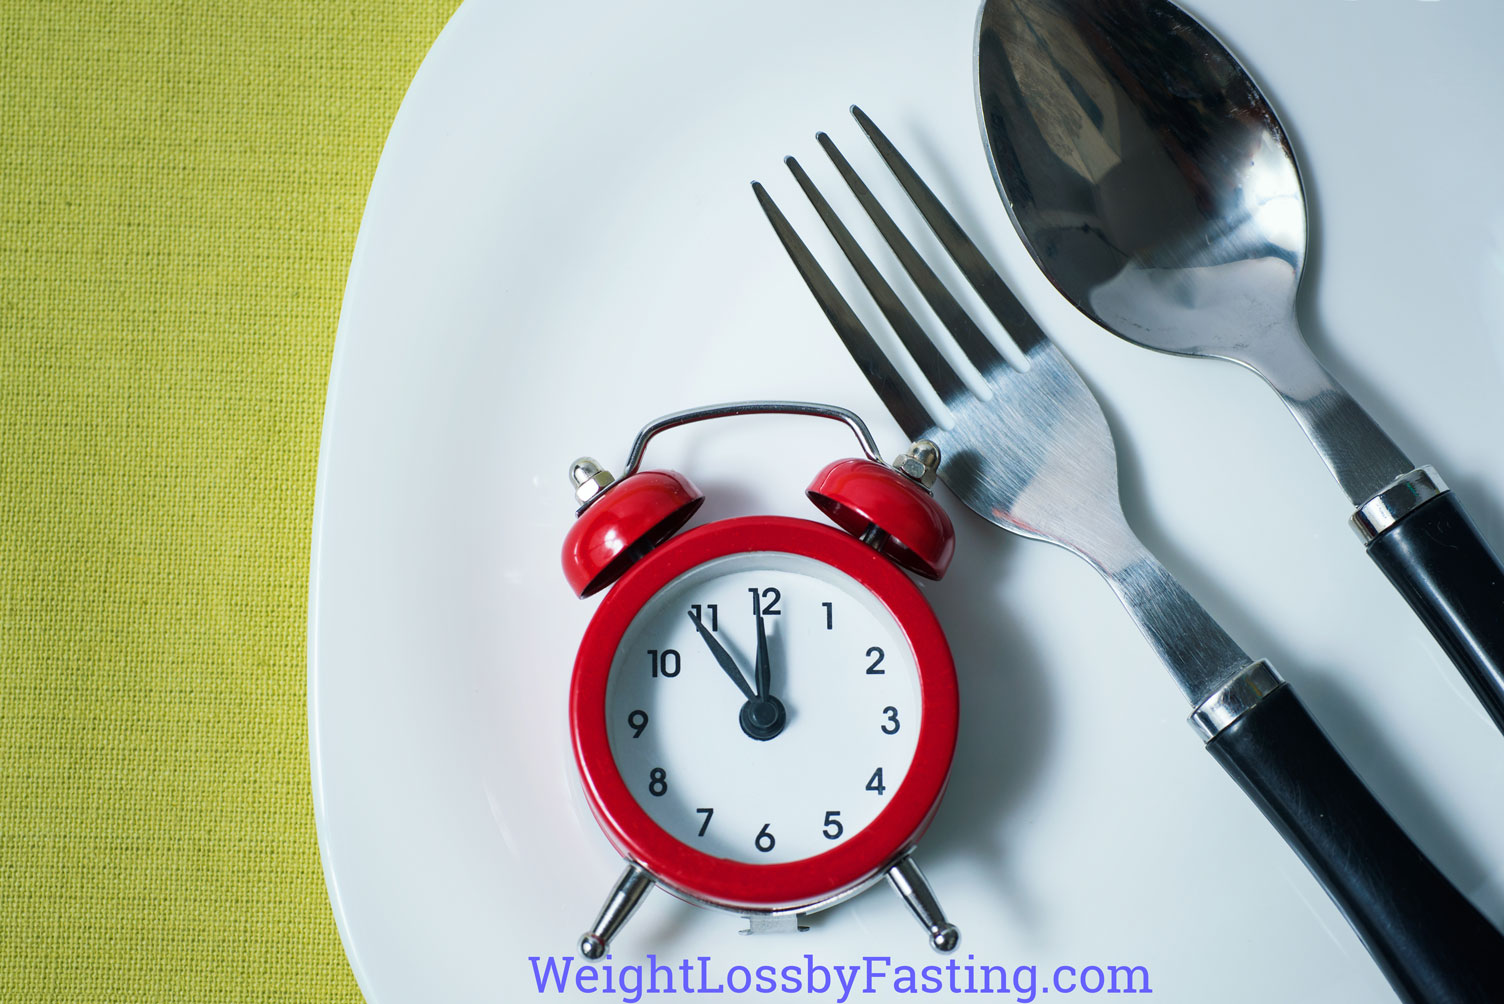 weight loss by fasting